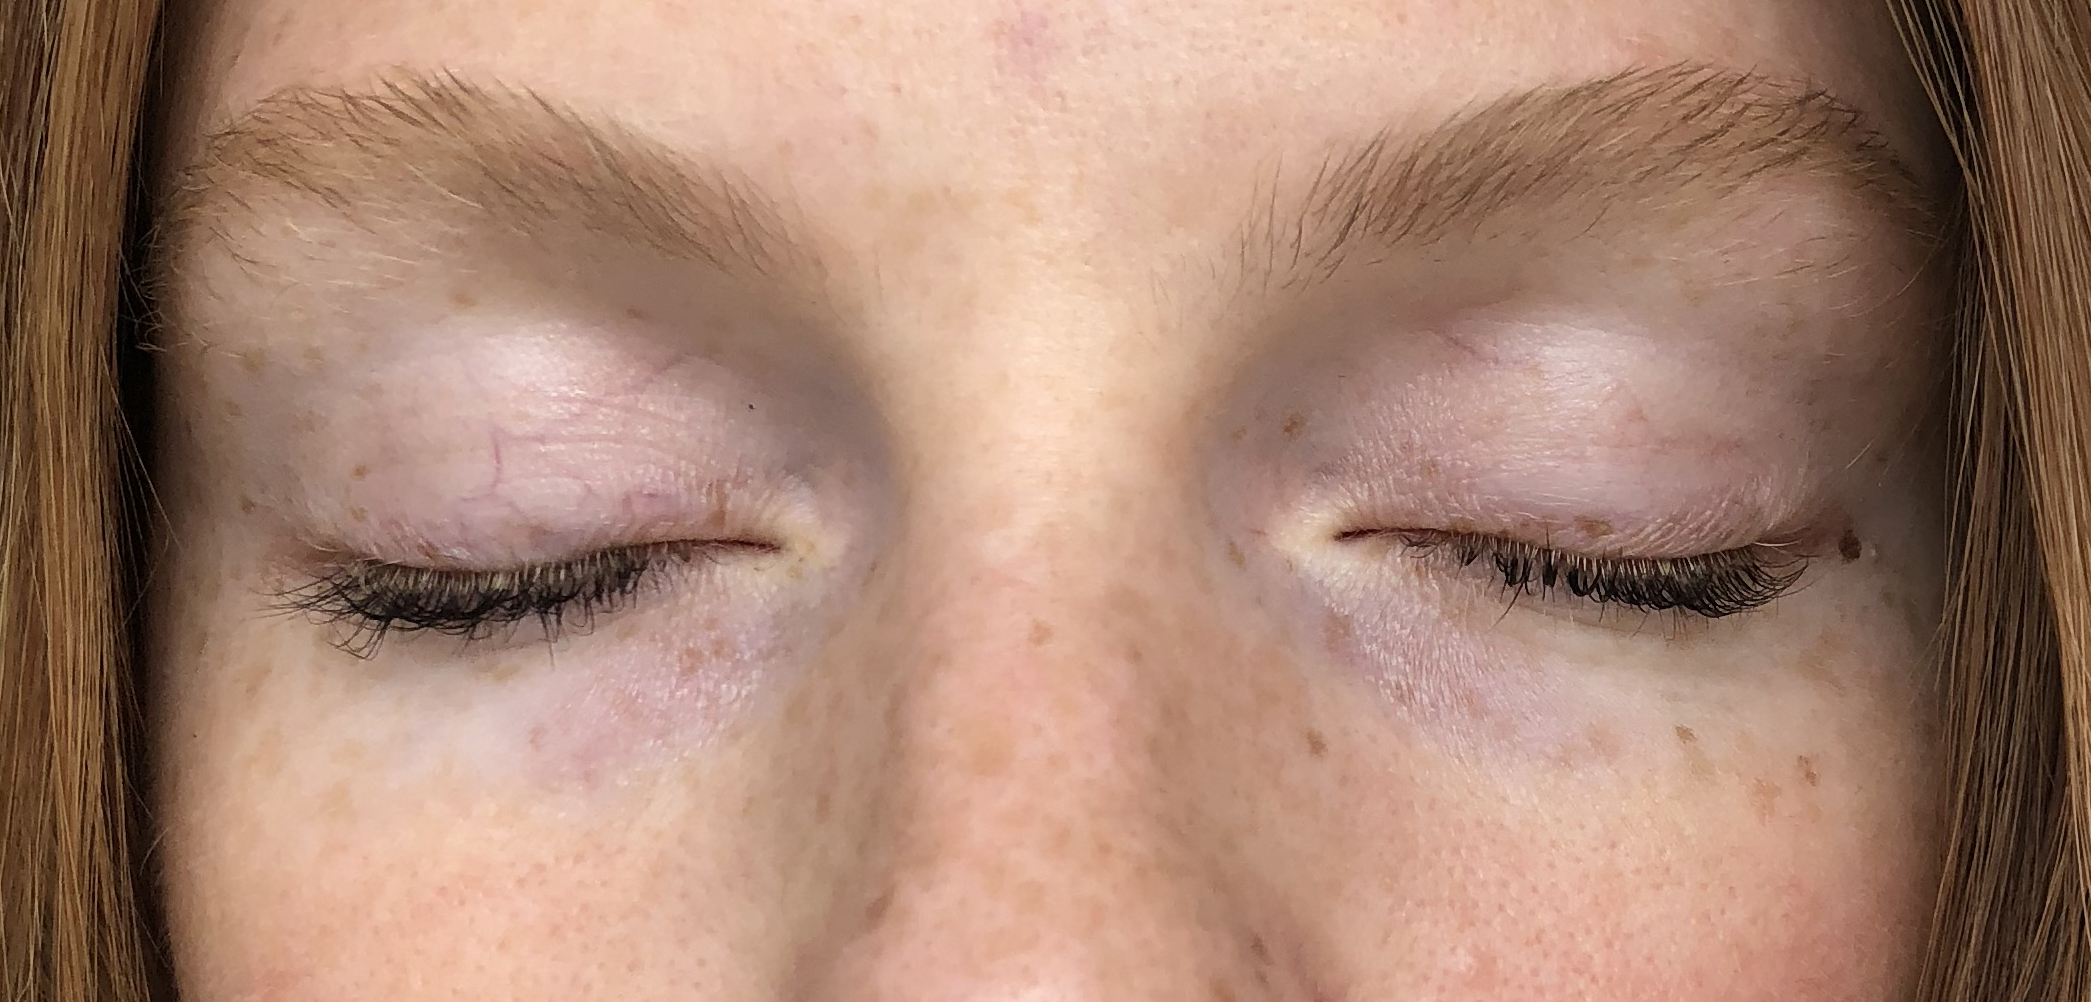 Above is a close up of my eyes after using the VIICode Eye Cream for 3 weeks. I used it on my left (your right) eye only.